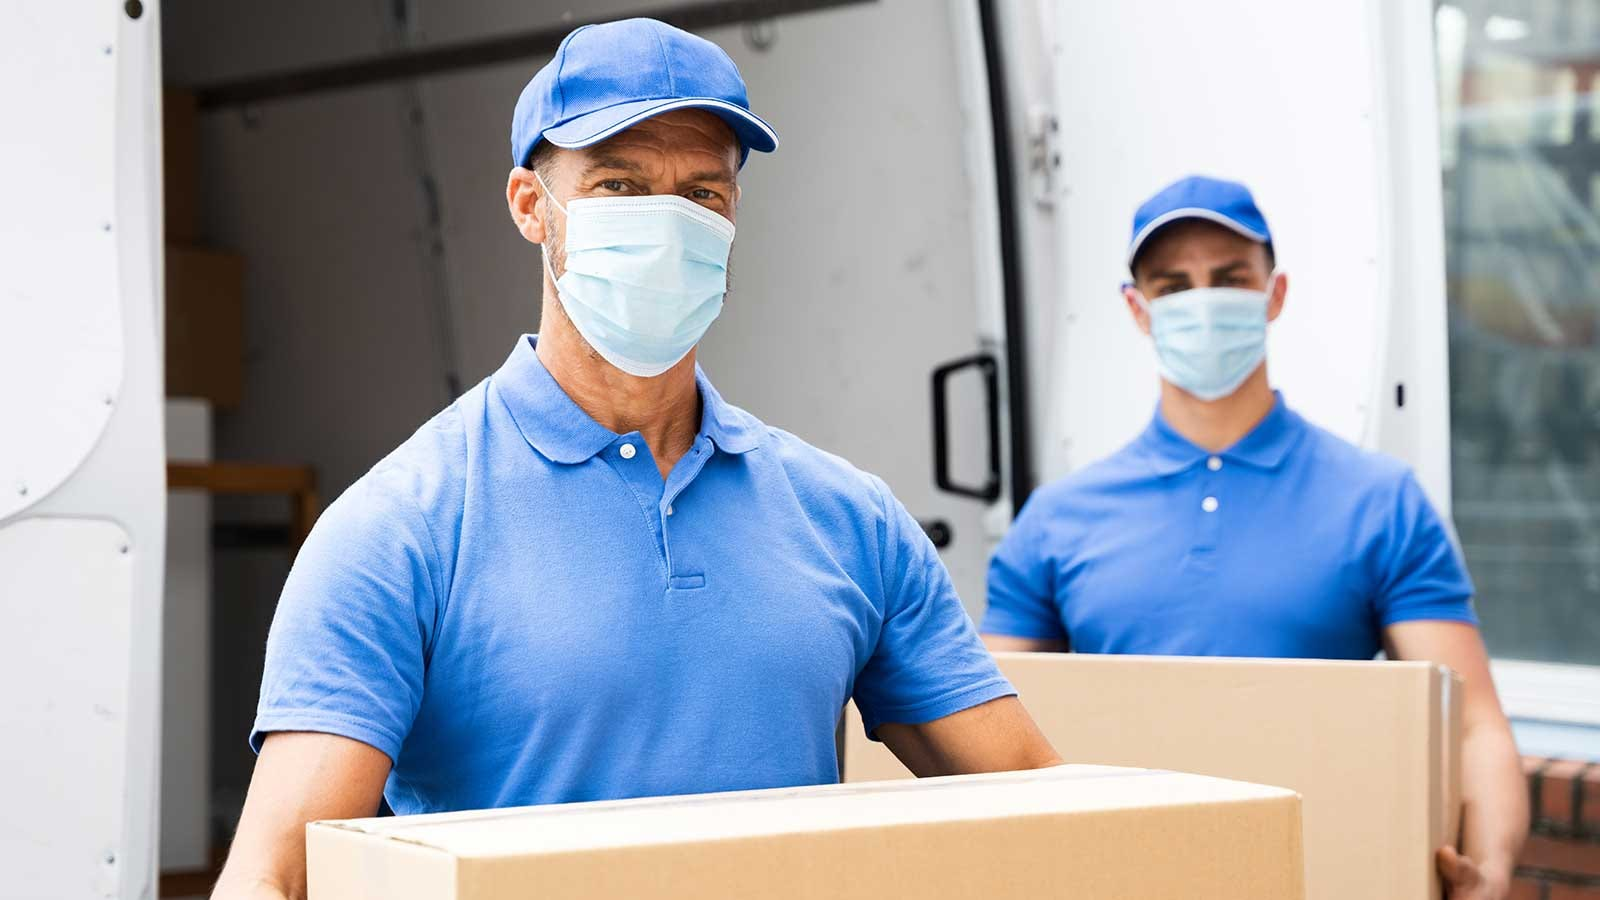 Movers wearing masks, carrying boxes into a new home.